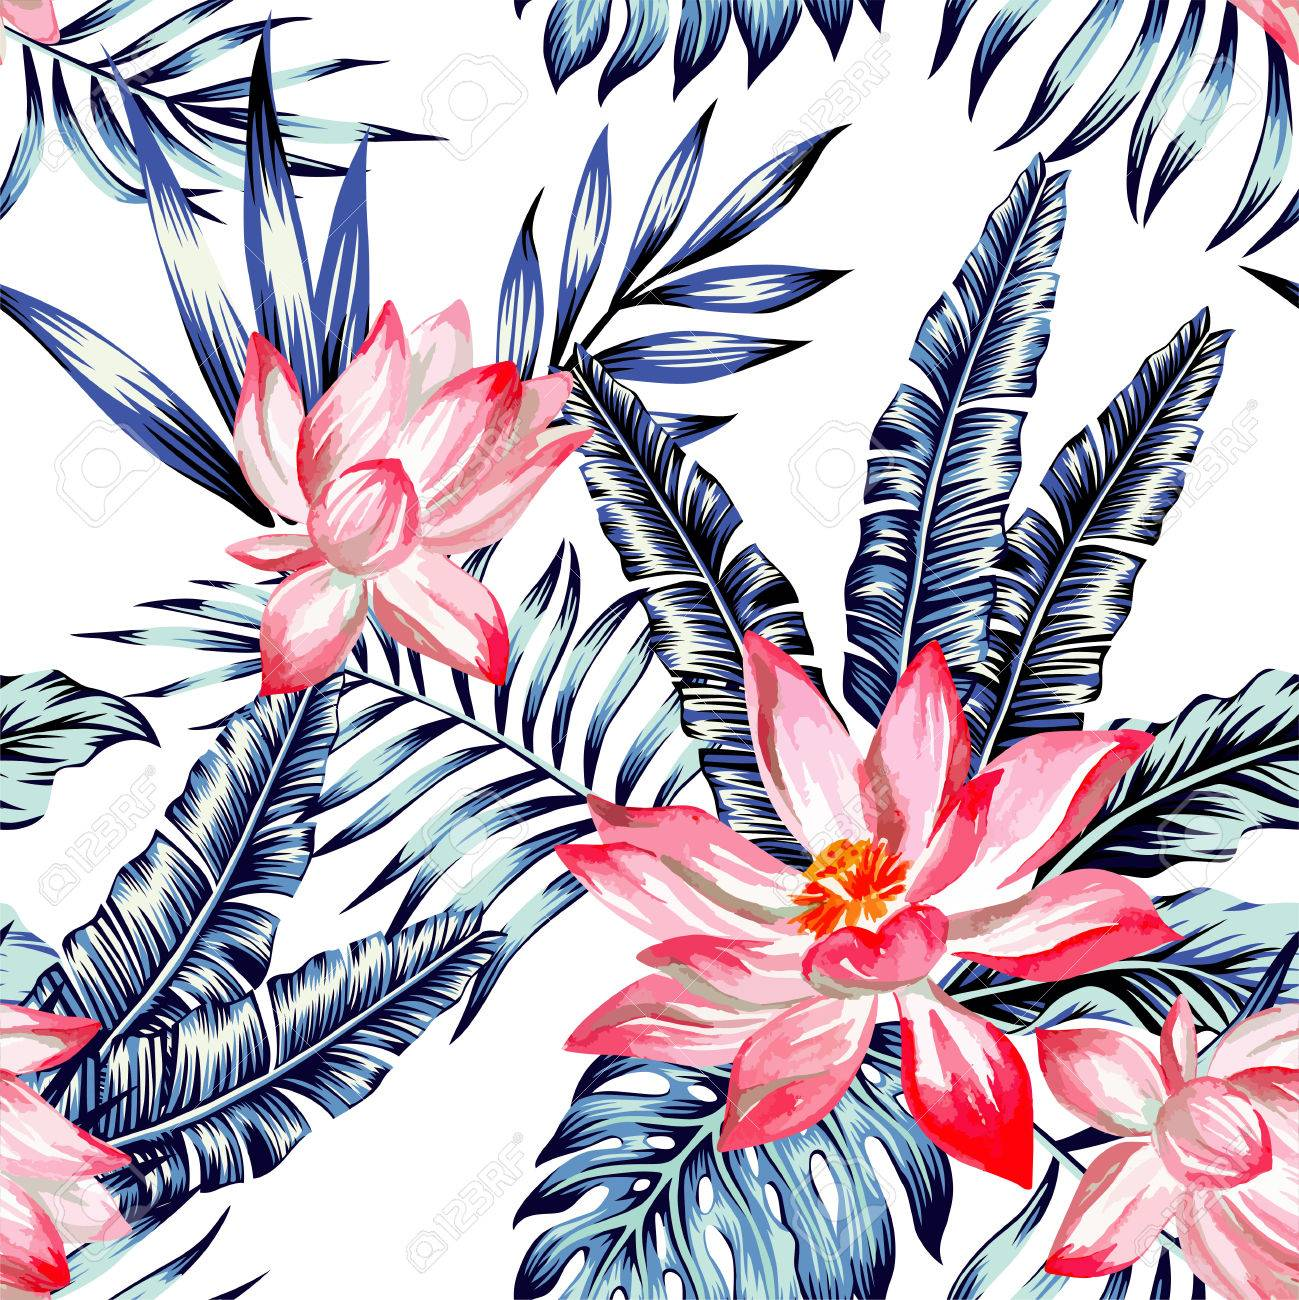 Floral Fashion Tropic Wallpaper With Leaves Of Banana Palm In A Trendy Blue Style Stock